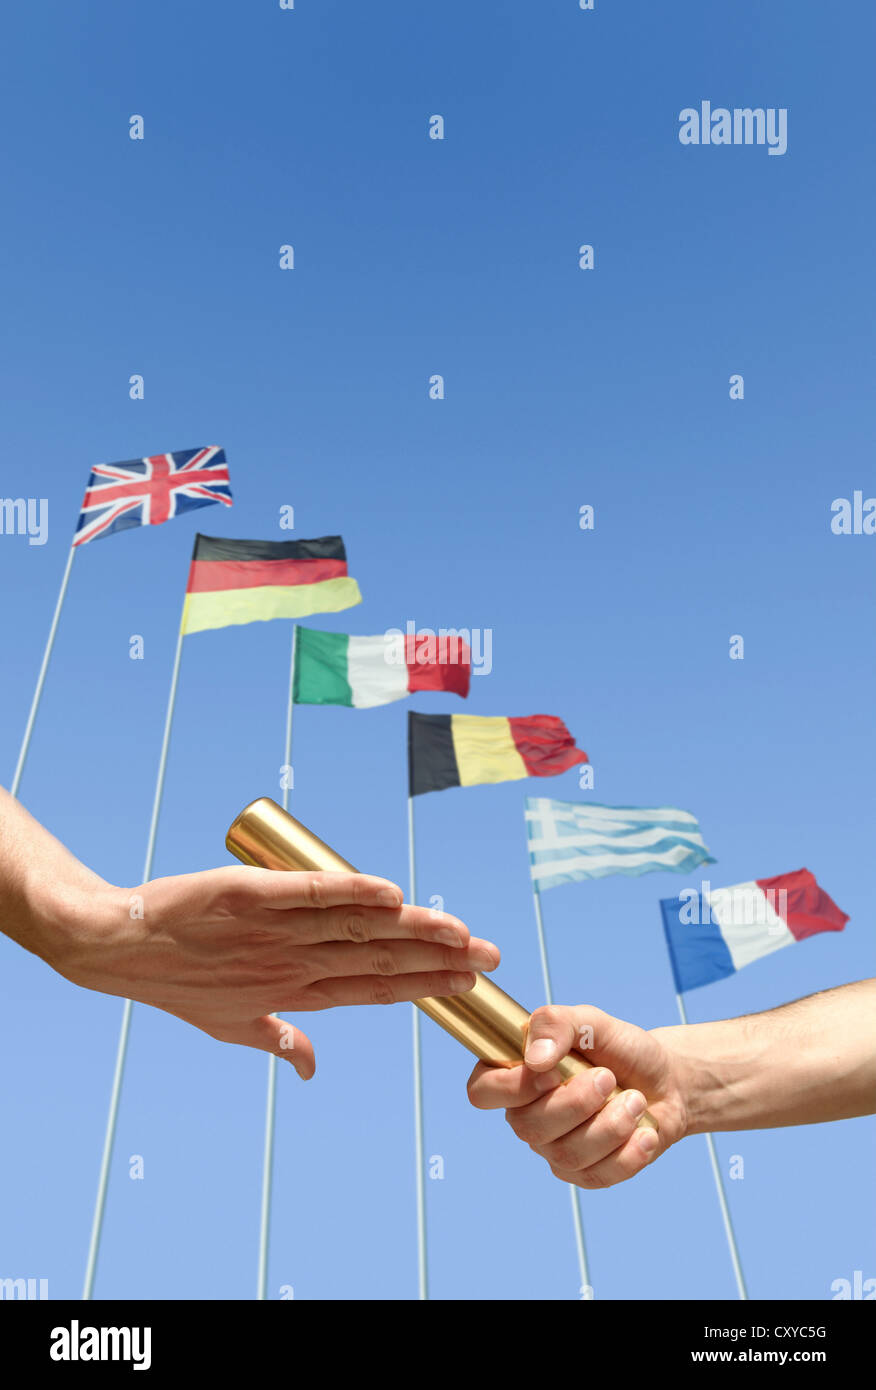 Relay race, detail of athletes hands during the handover of the baton in front of international flags - Stock Image